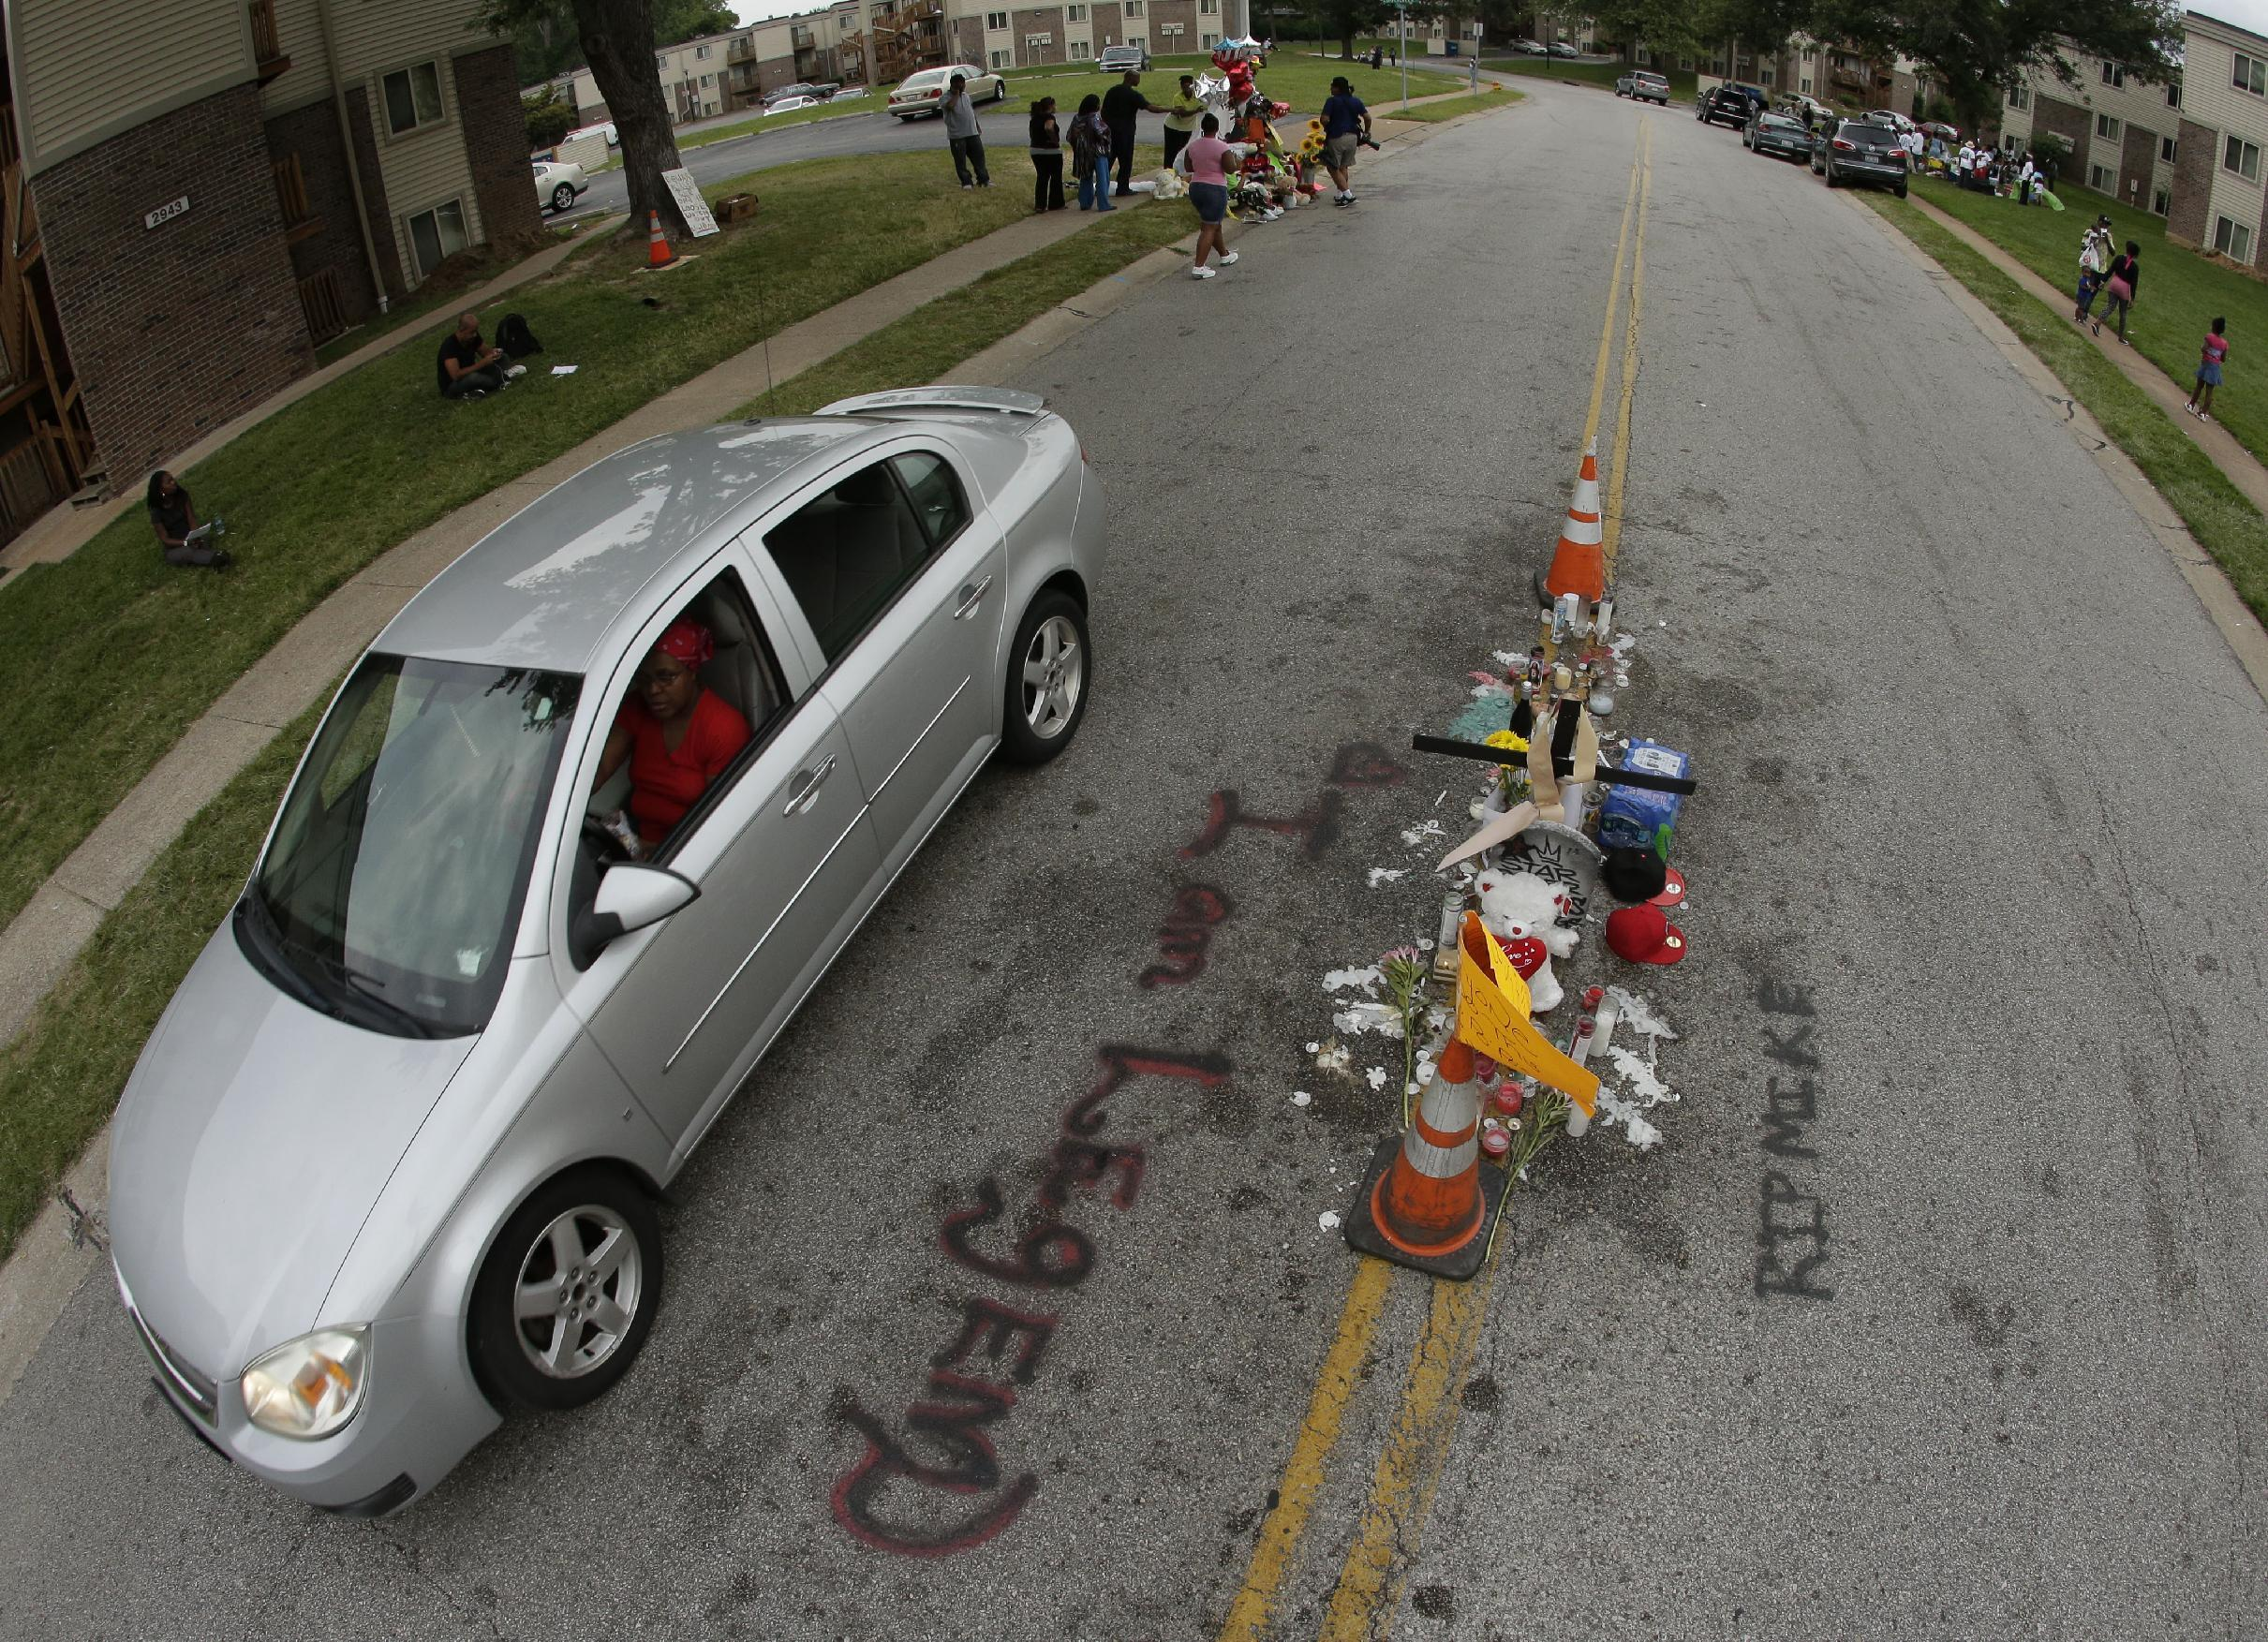 Ferguson News Guide: No charges expected for policeman